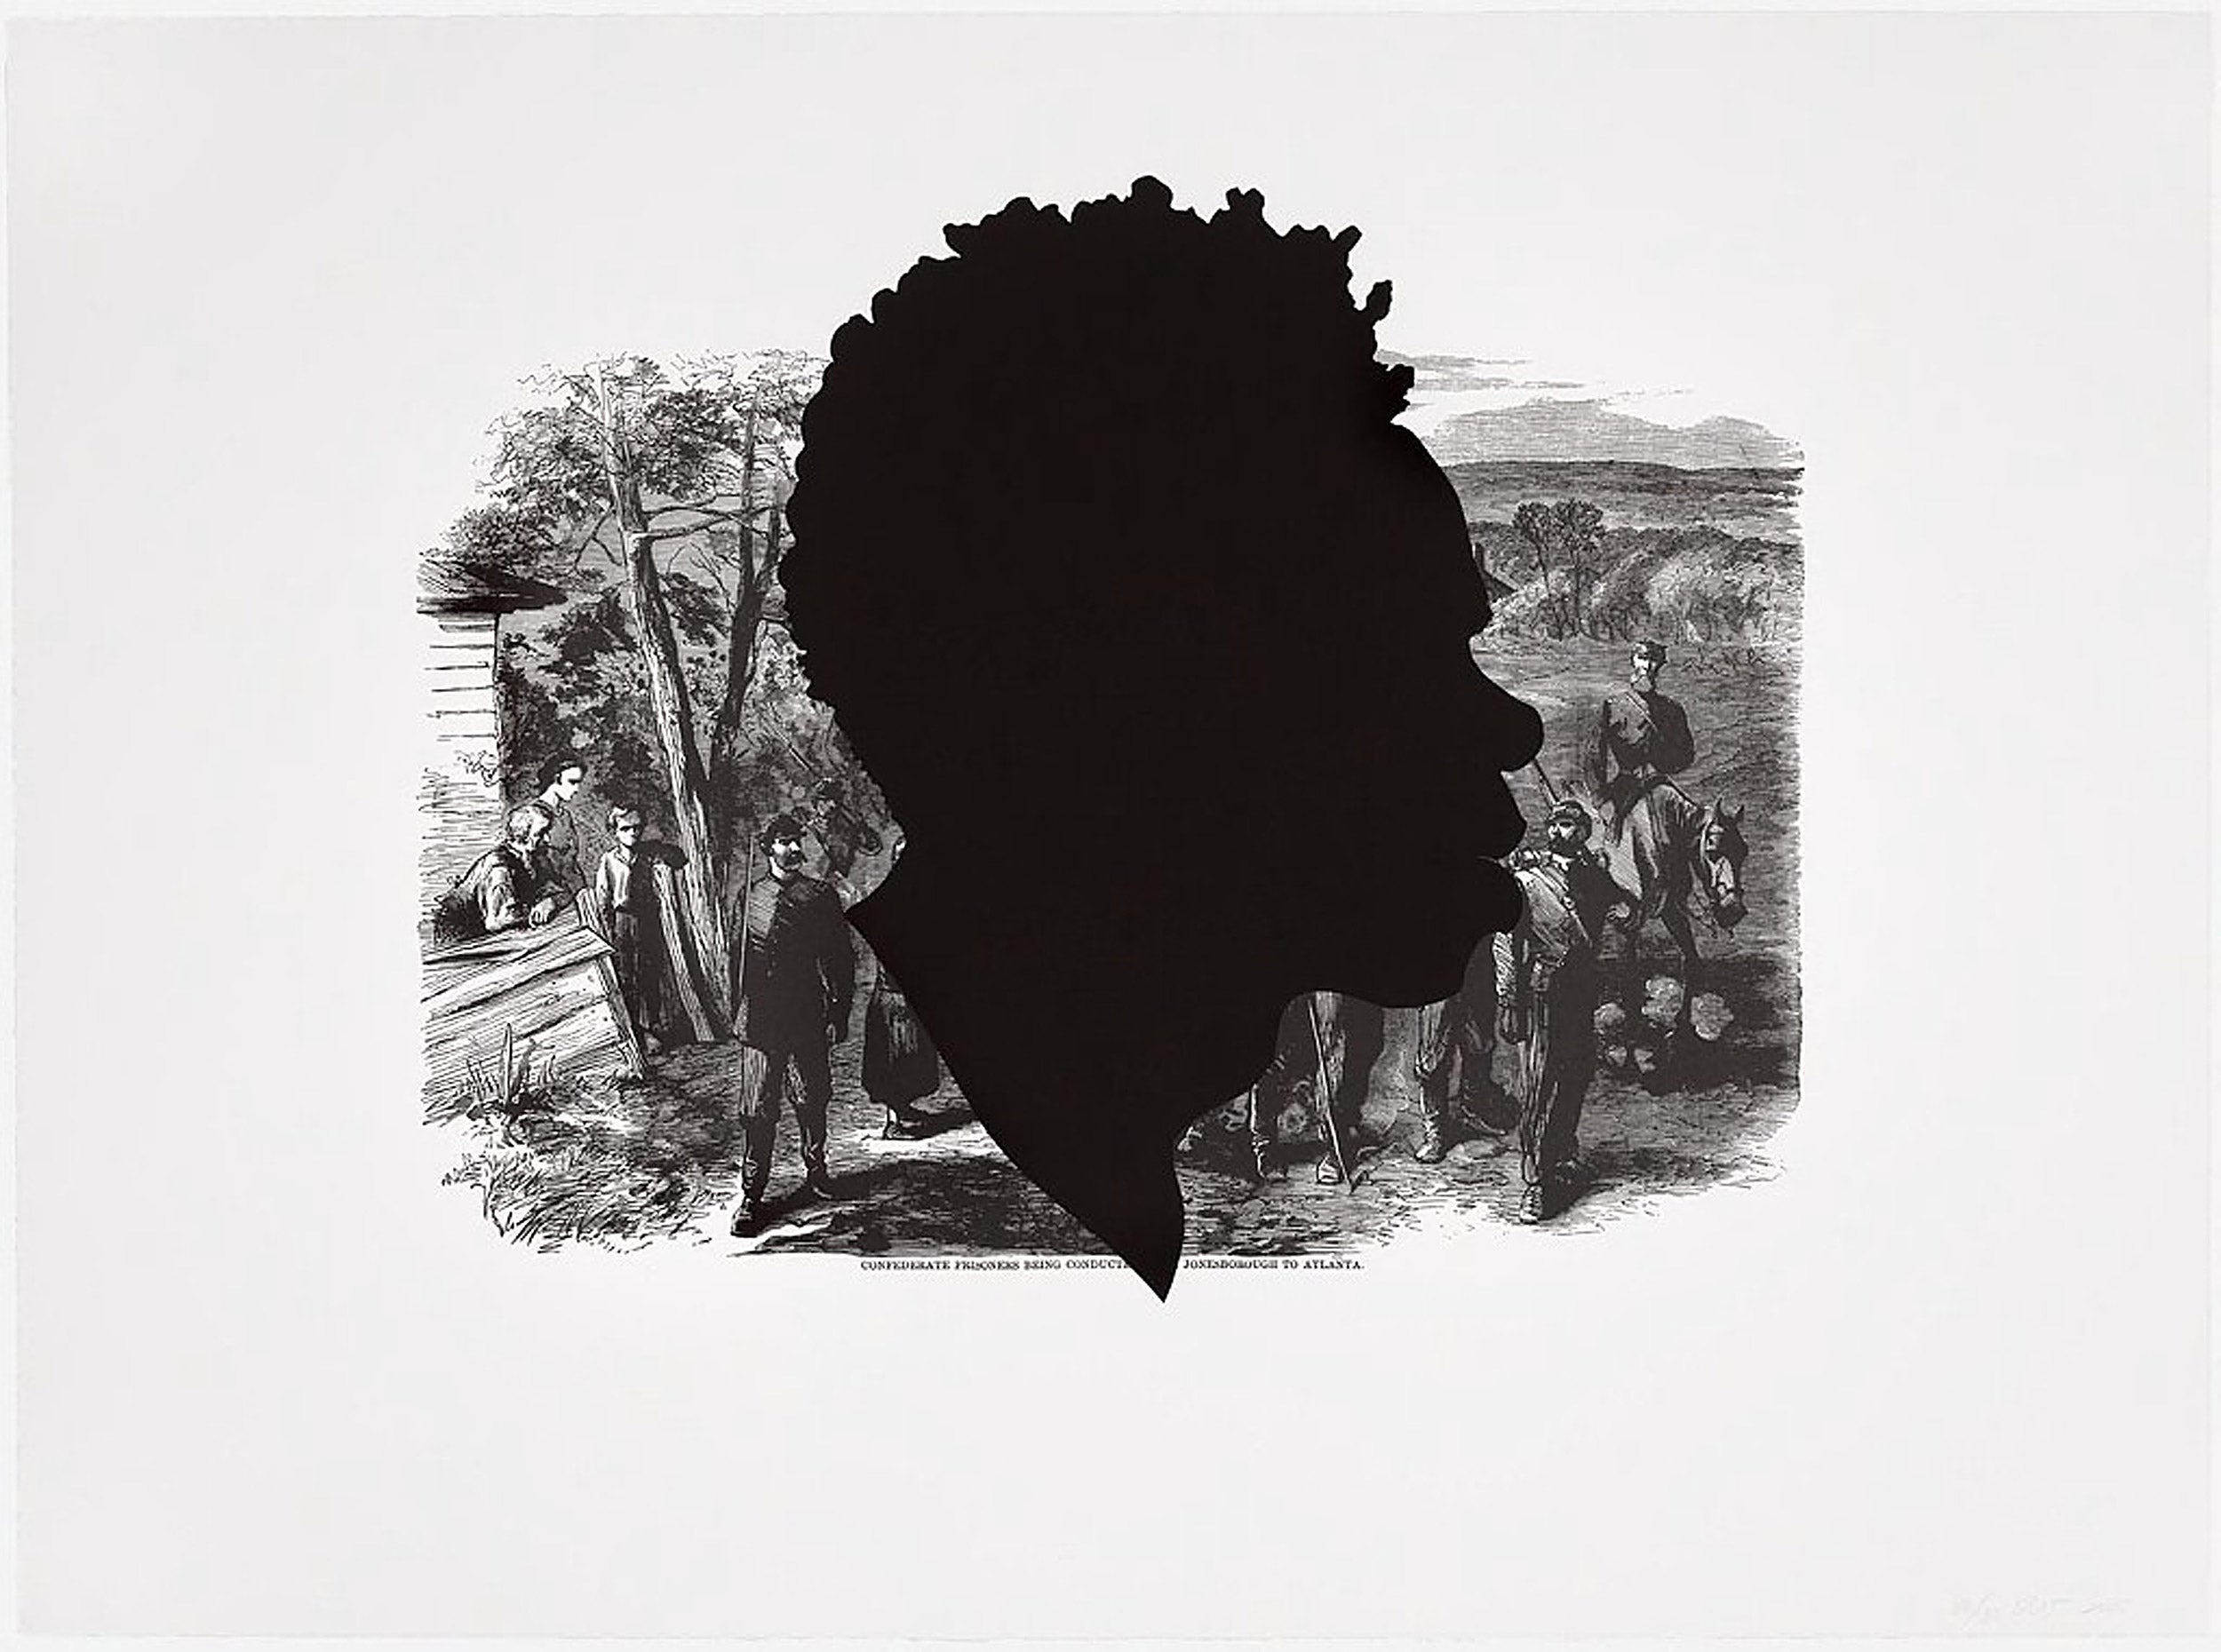 """Confederate Prisoners being Conducted from Jonesborough to Atlanta,"" offset lithograph and screenprint by Kara Walker."